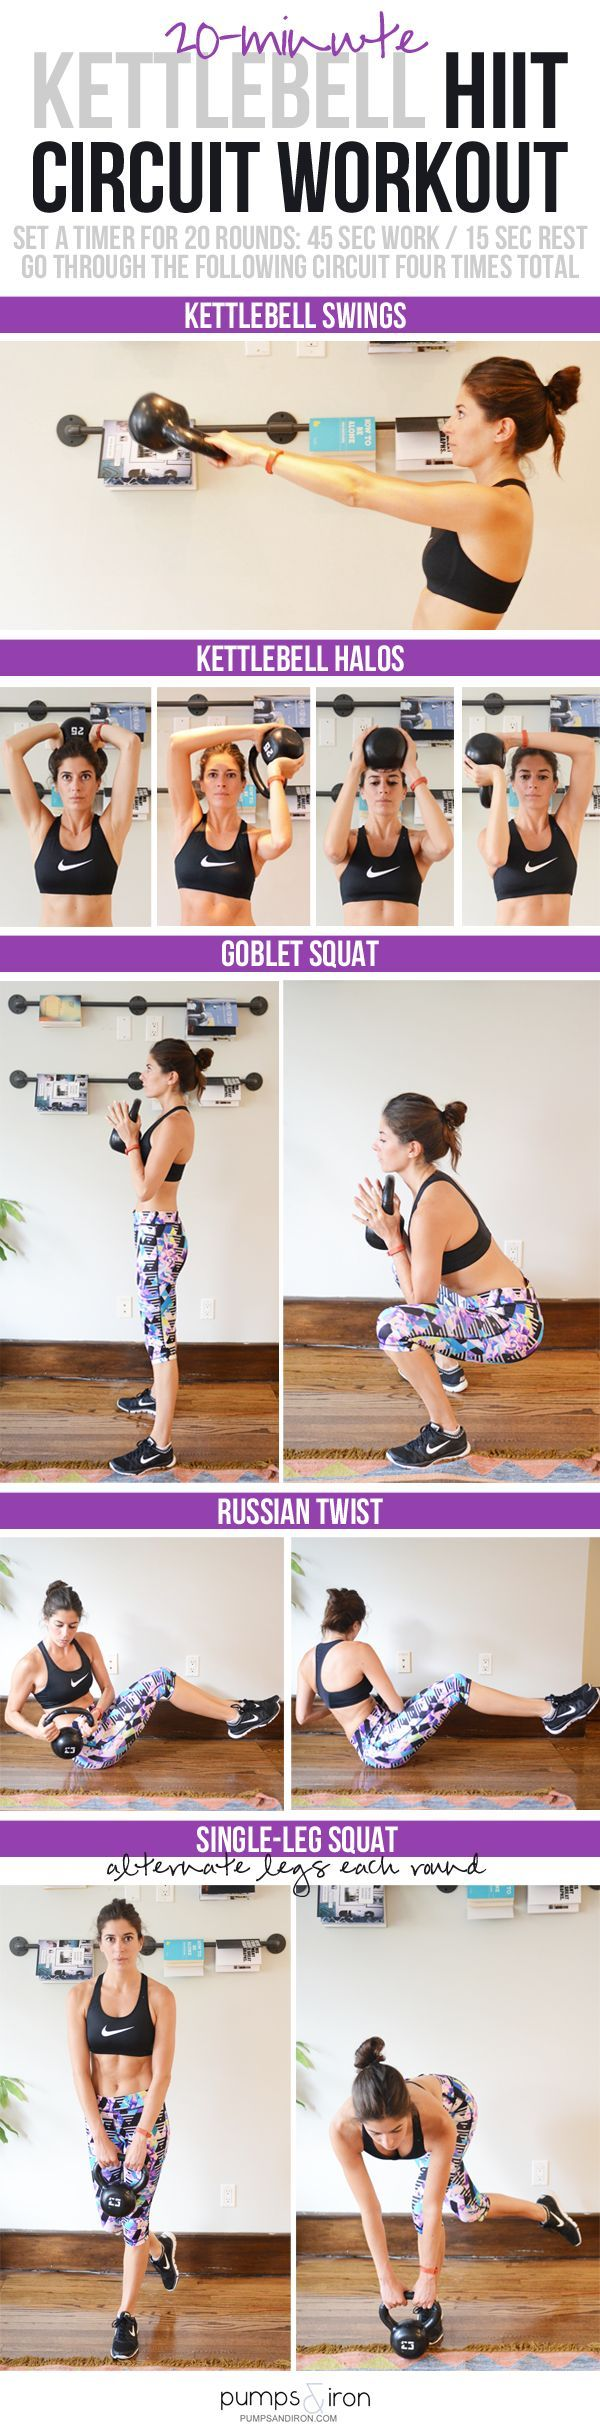 20-Minute Kettlebell HIIT Workout (great one for small spaces/apartments) #MakeYourMove